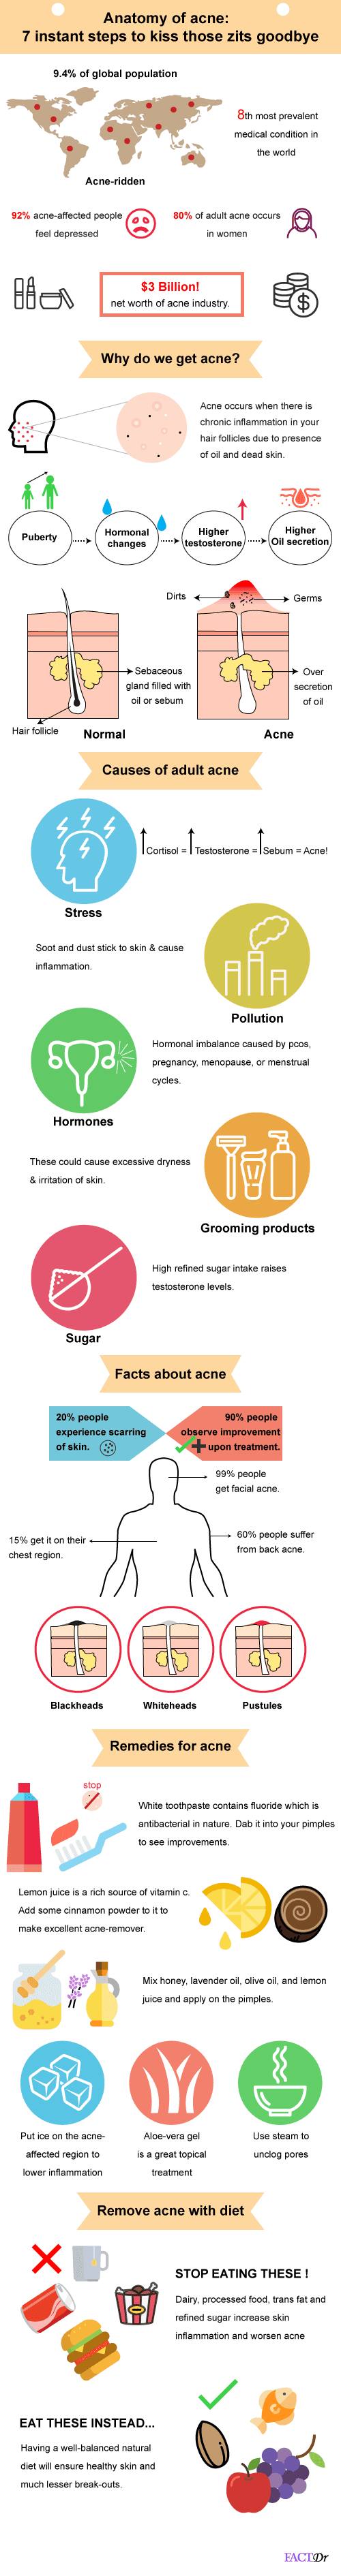 Anatomy of acne: 7 instant steps to kiss those zits goodbye